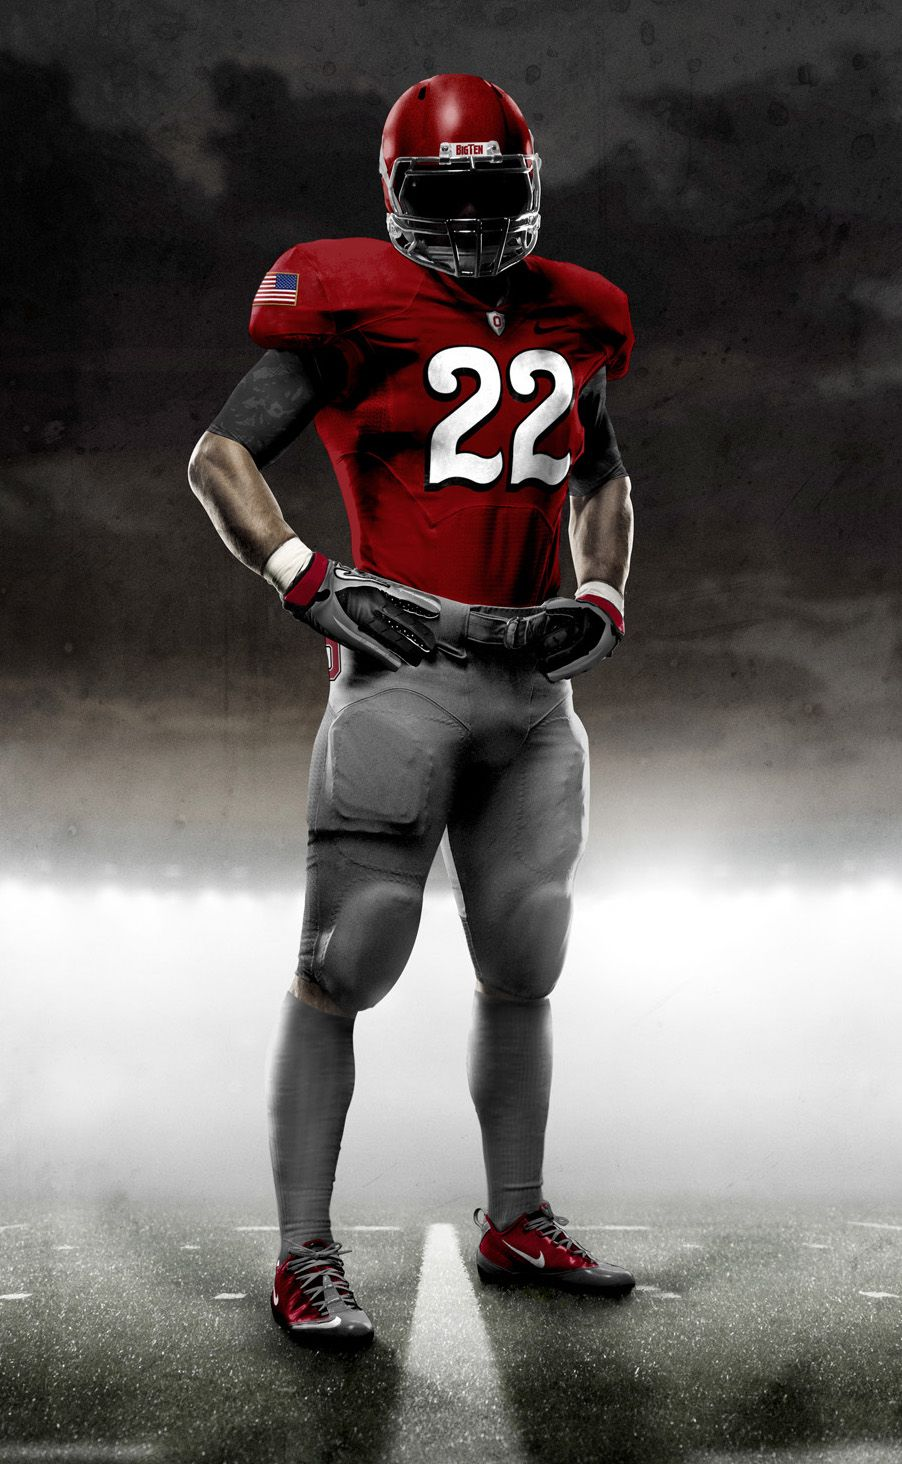 Nike Unveiled The Designs Monday For The Pro Combat Uniforms That Ohio State Will Wear Against Michigan On Nov 27 The Second Consecutive Year Osu Will Do アメフト